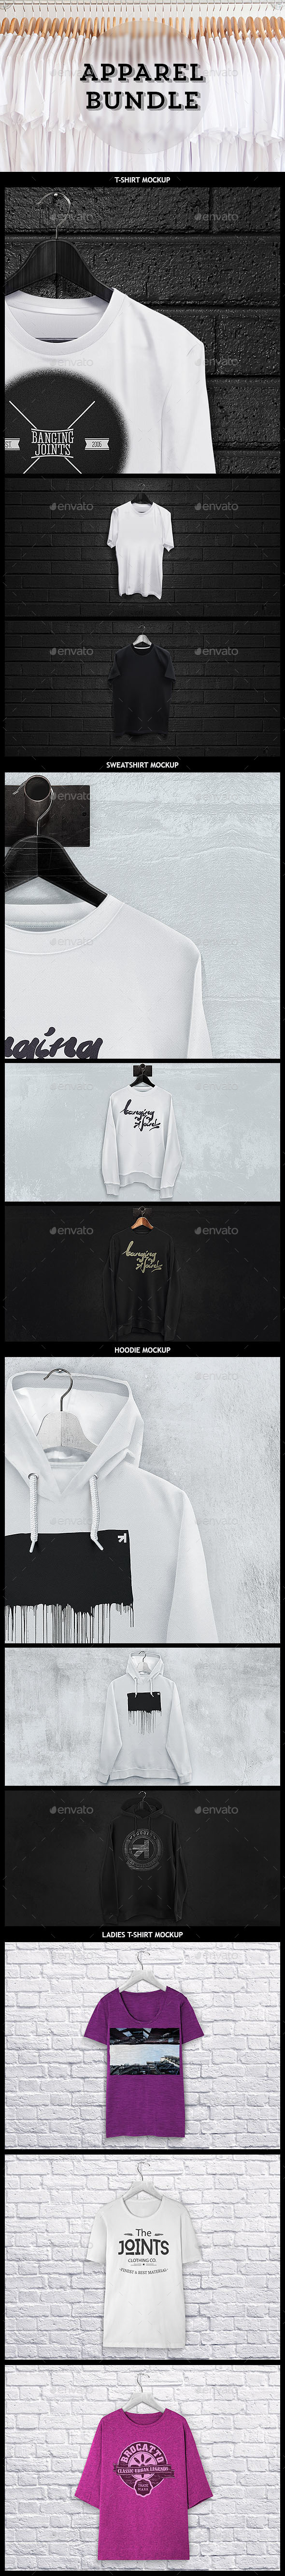 GraphicRiver Apparel Mockup Bundle T-shirt Sweat Hoodie 9918559